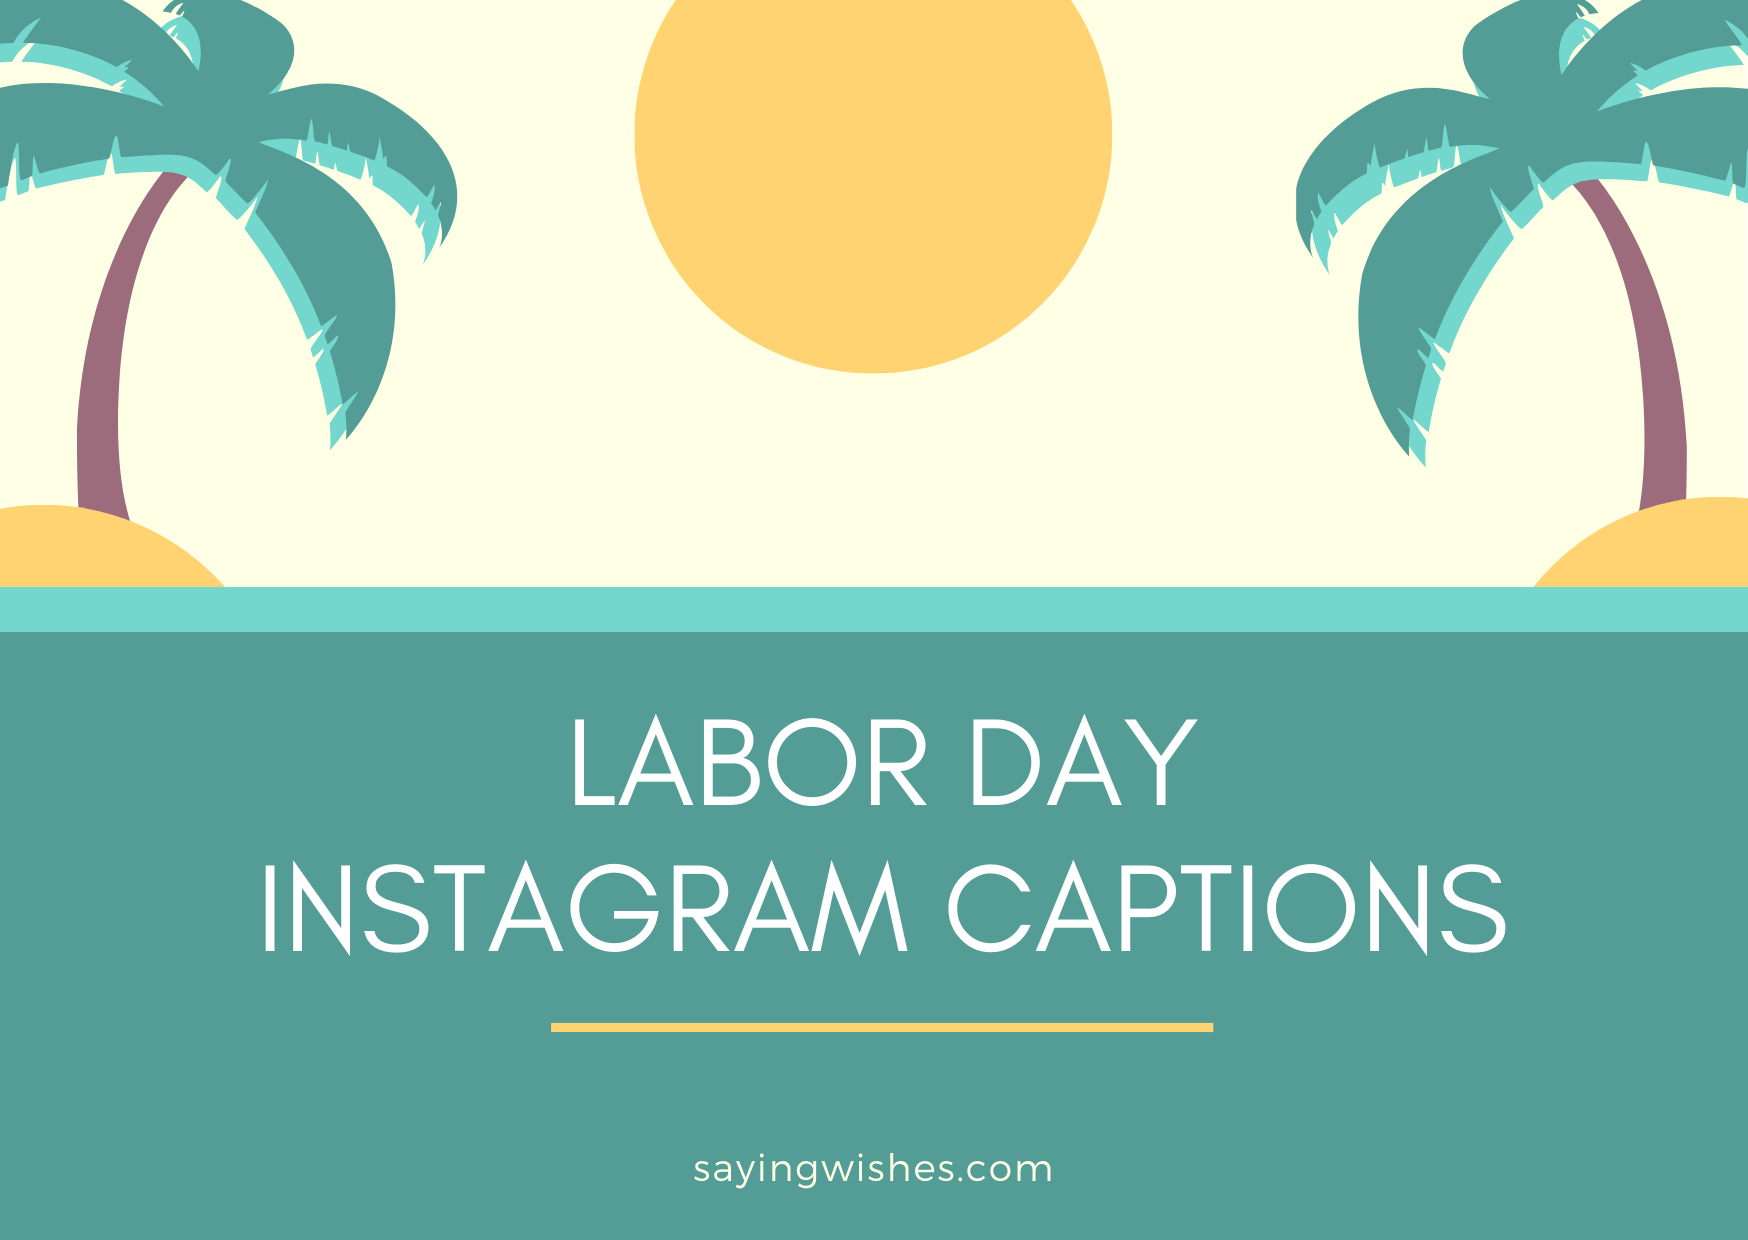 labor day caption for instagram story